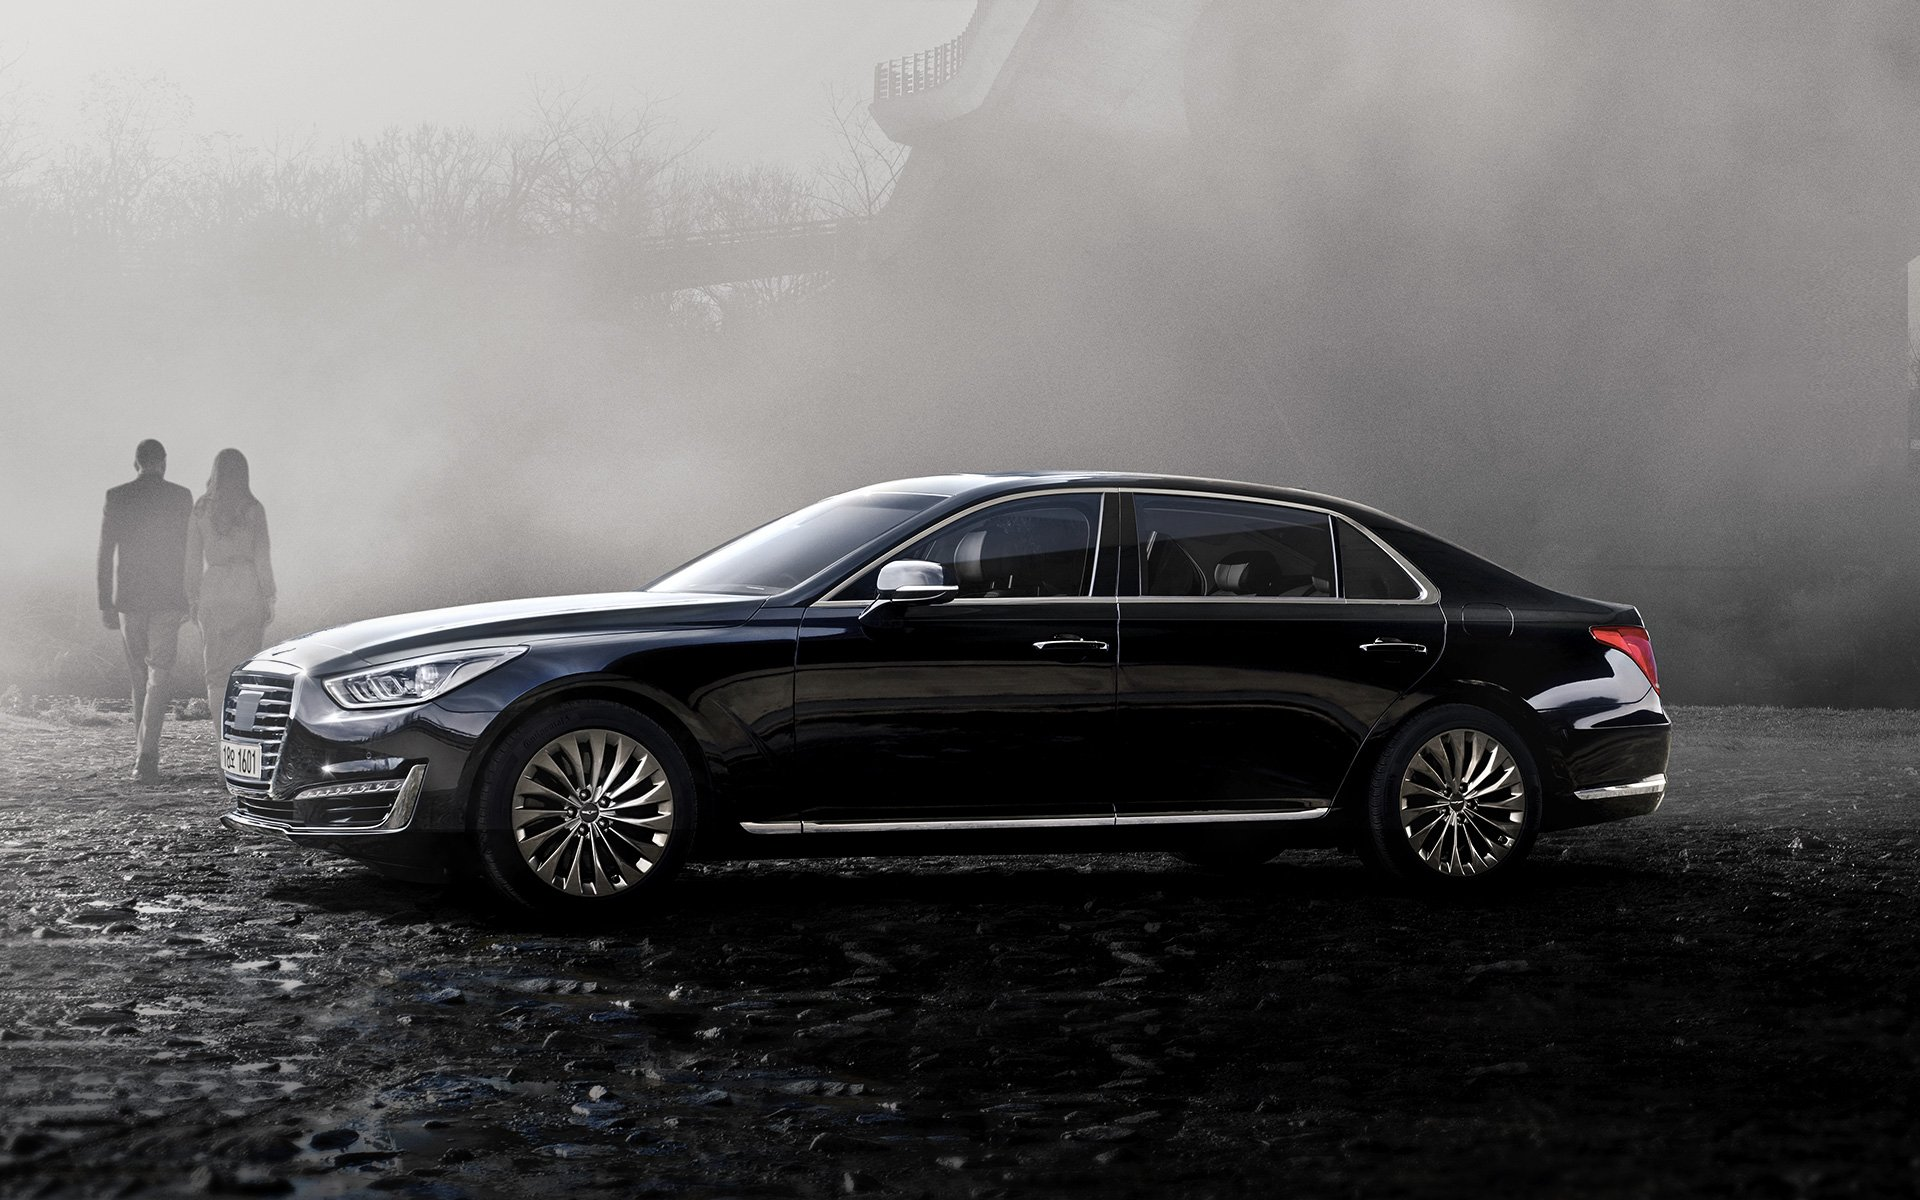 Genesis Eq900 New Luxury Midsize Sedan Genesis Korea